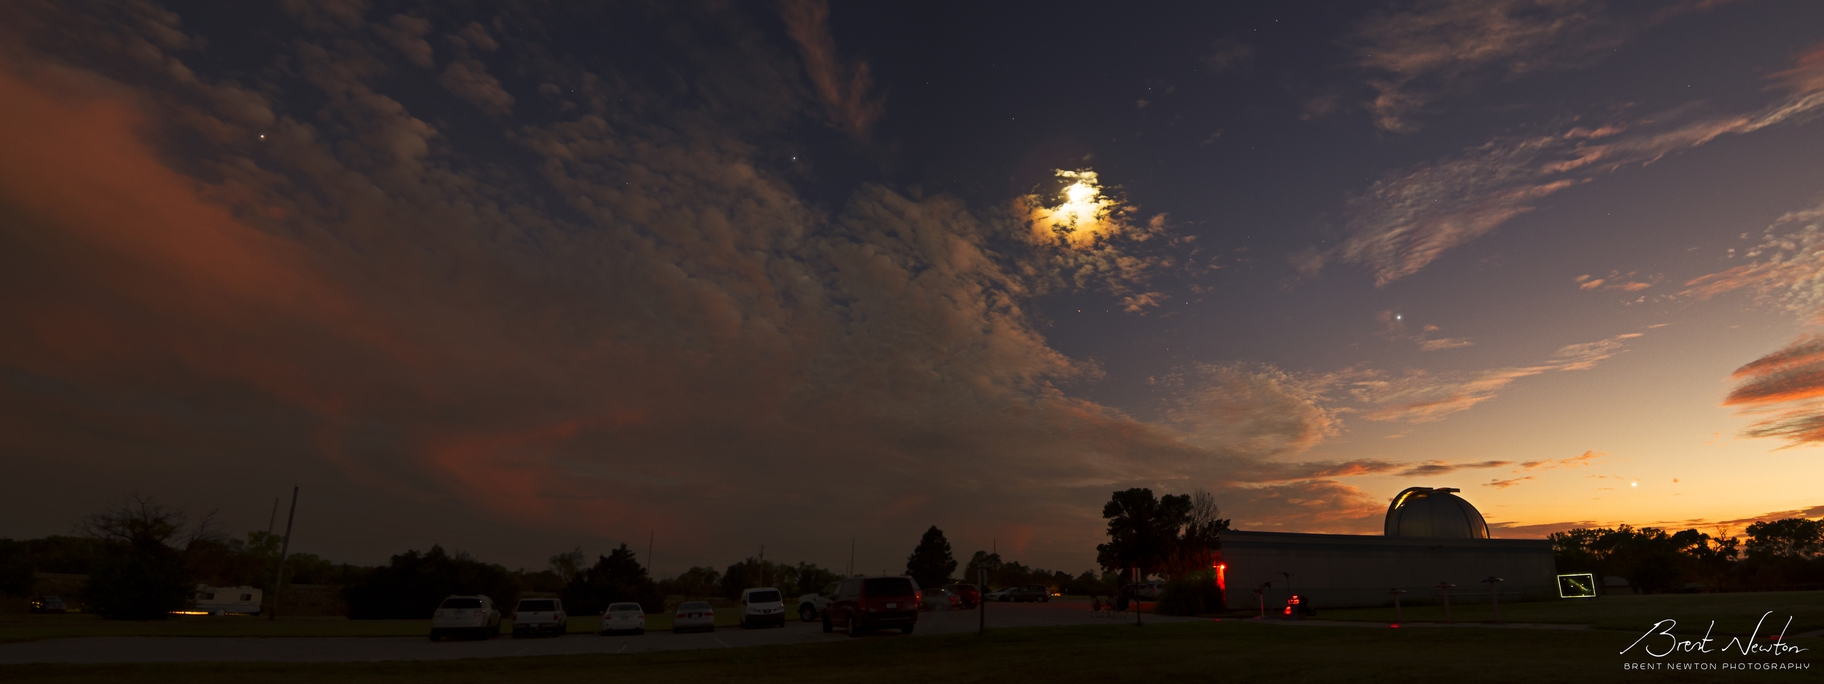 Widefield taken at Lake Afton Observatory west of Wichita. From left to right Mars, Saturn, the Moon, Jupiter, and Venus are all visible along the ecliptic. September 2018